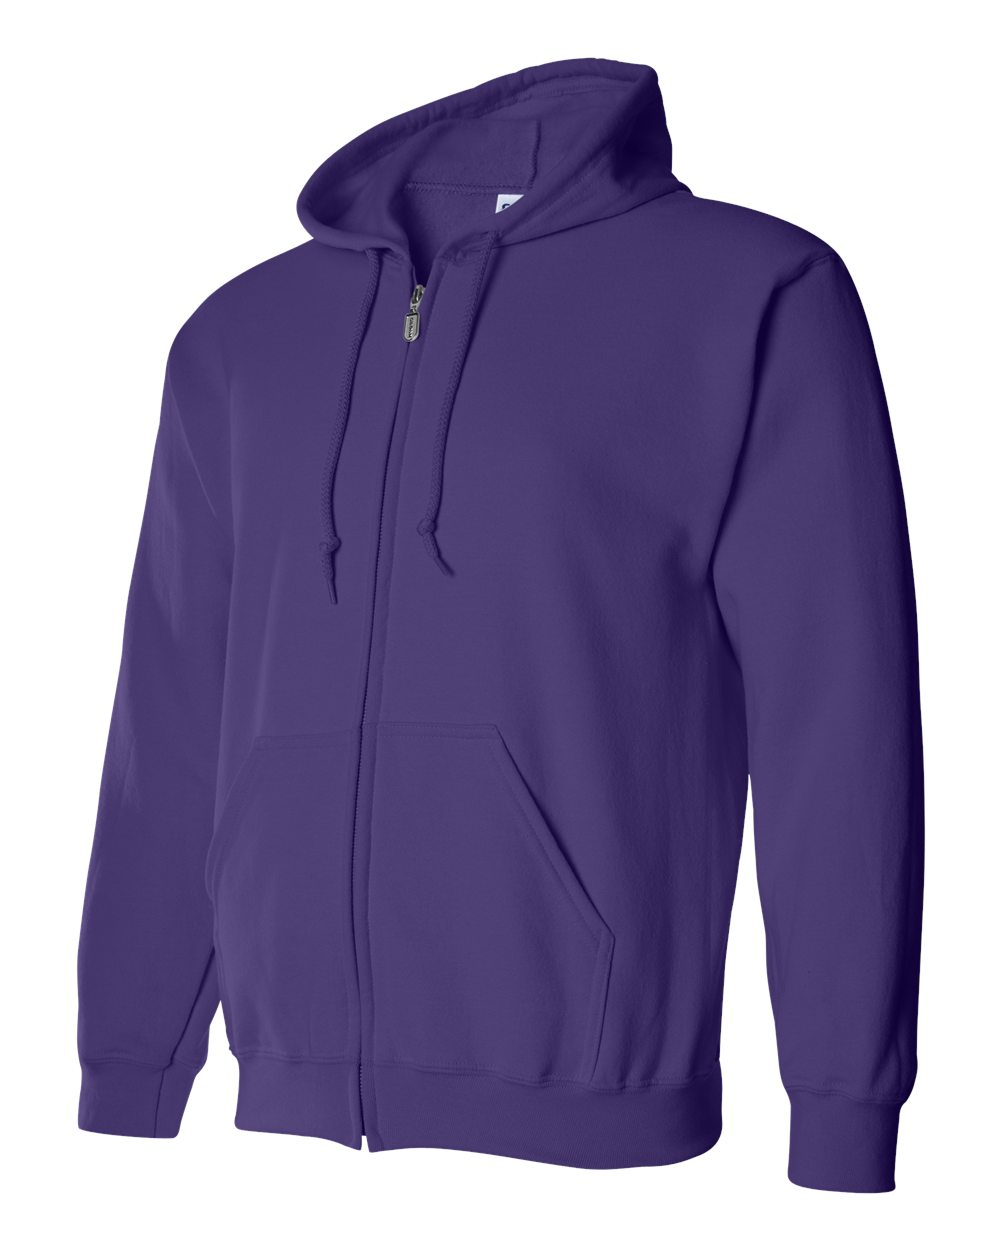 Gildan Heavy Blend Full Zip Hoodie GIL18600 Purple